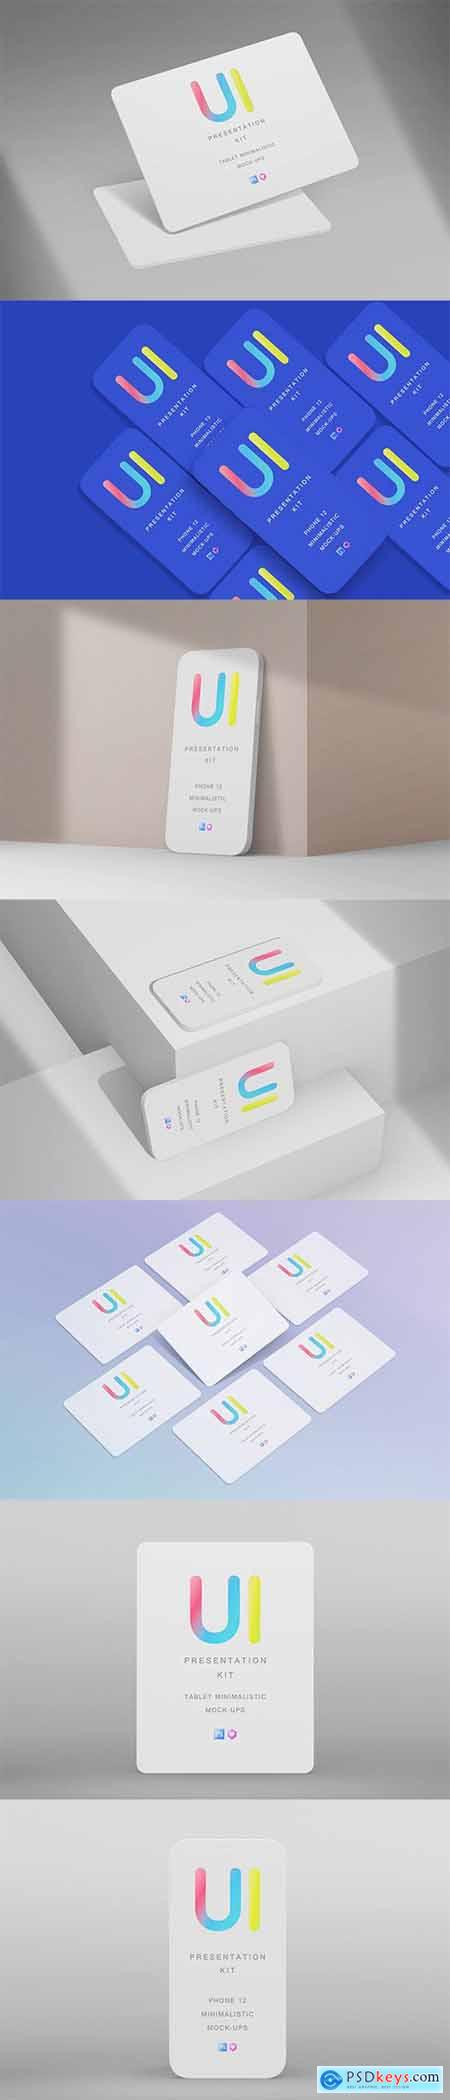 Imock Up Responsive Minimalistic Devices Kit Vol.1